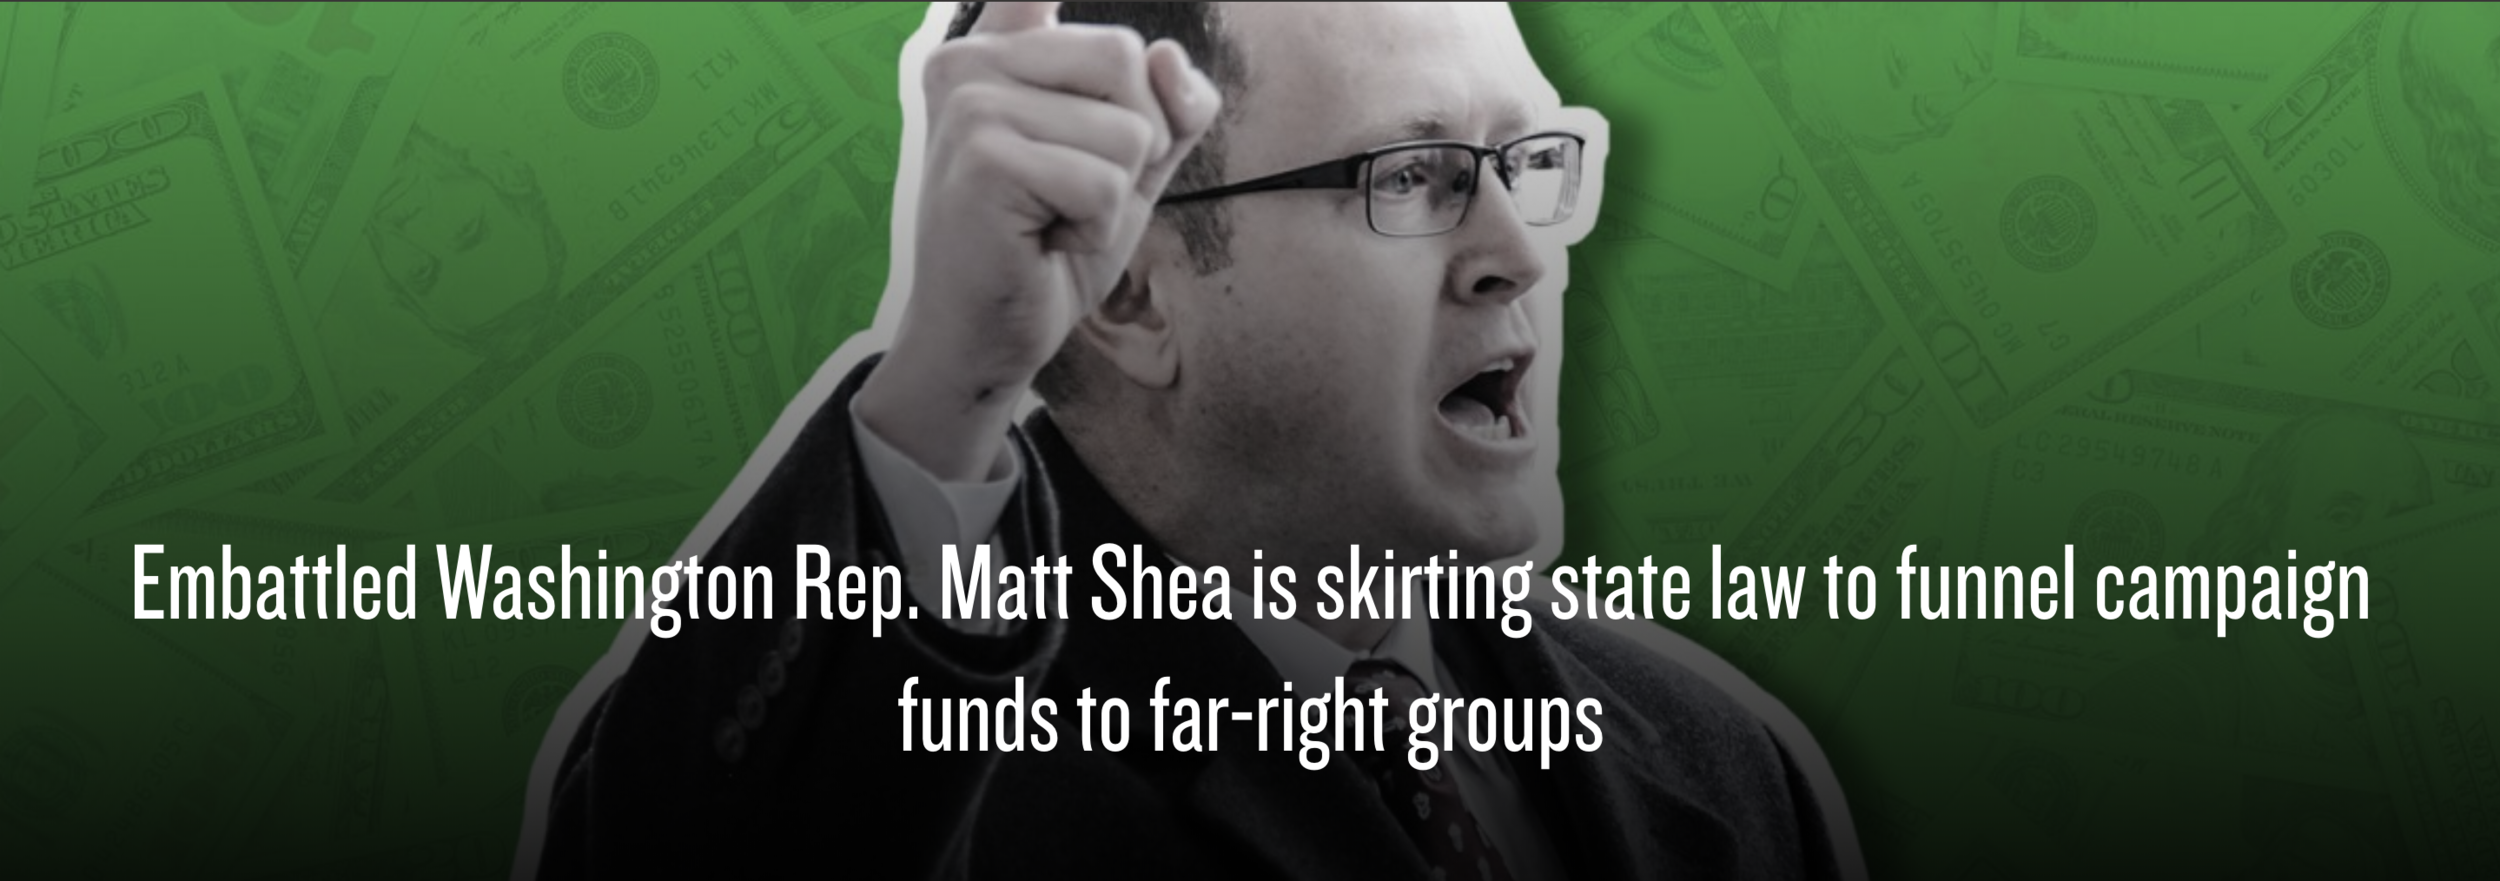 """Embattled conspiracy theorist and Washington state Republican Rep. Matt Shea has been skirting Washington state law to funnel campaign contributions to far-right nonprofit groups in Colorado and Arizona, a Hatewatch investigation reveals.  Shea uses his office and campaign funds to spearhead a partitionist effort to split Washington into two states, and may have violated state laws by using surplus campaign funds to make at least $5,500 in contributions to far-right nonprofit organizations that are not registered as charities with the Washington Secretary of State. State law requires charities to be registered with the state to receive surplus campaign funds.""   CLICK HERE FOR FULL ARTICLE"